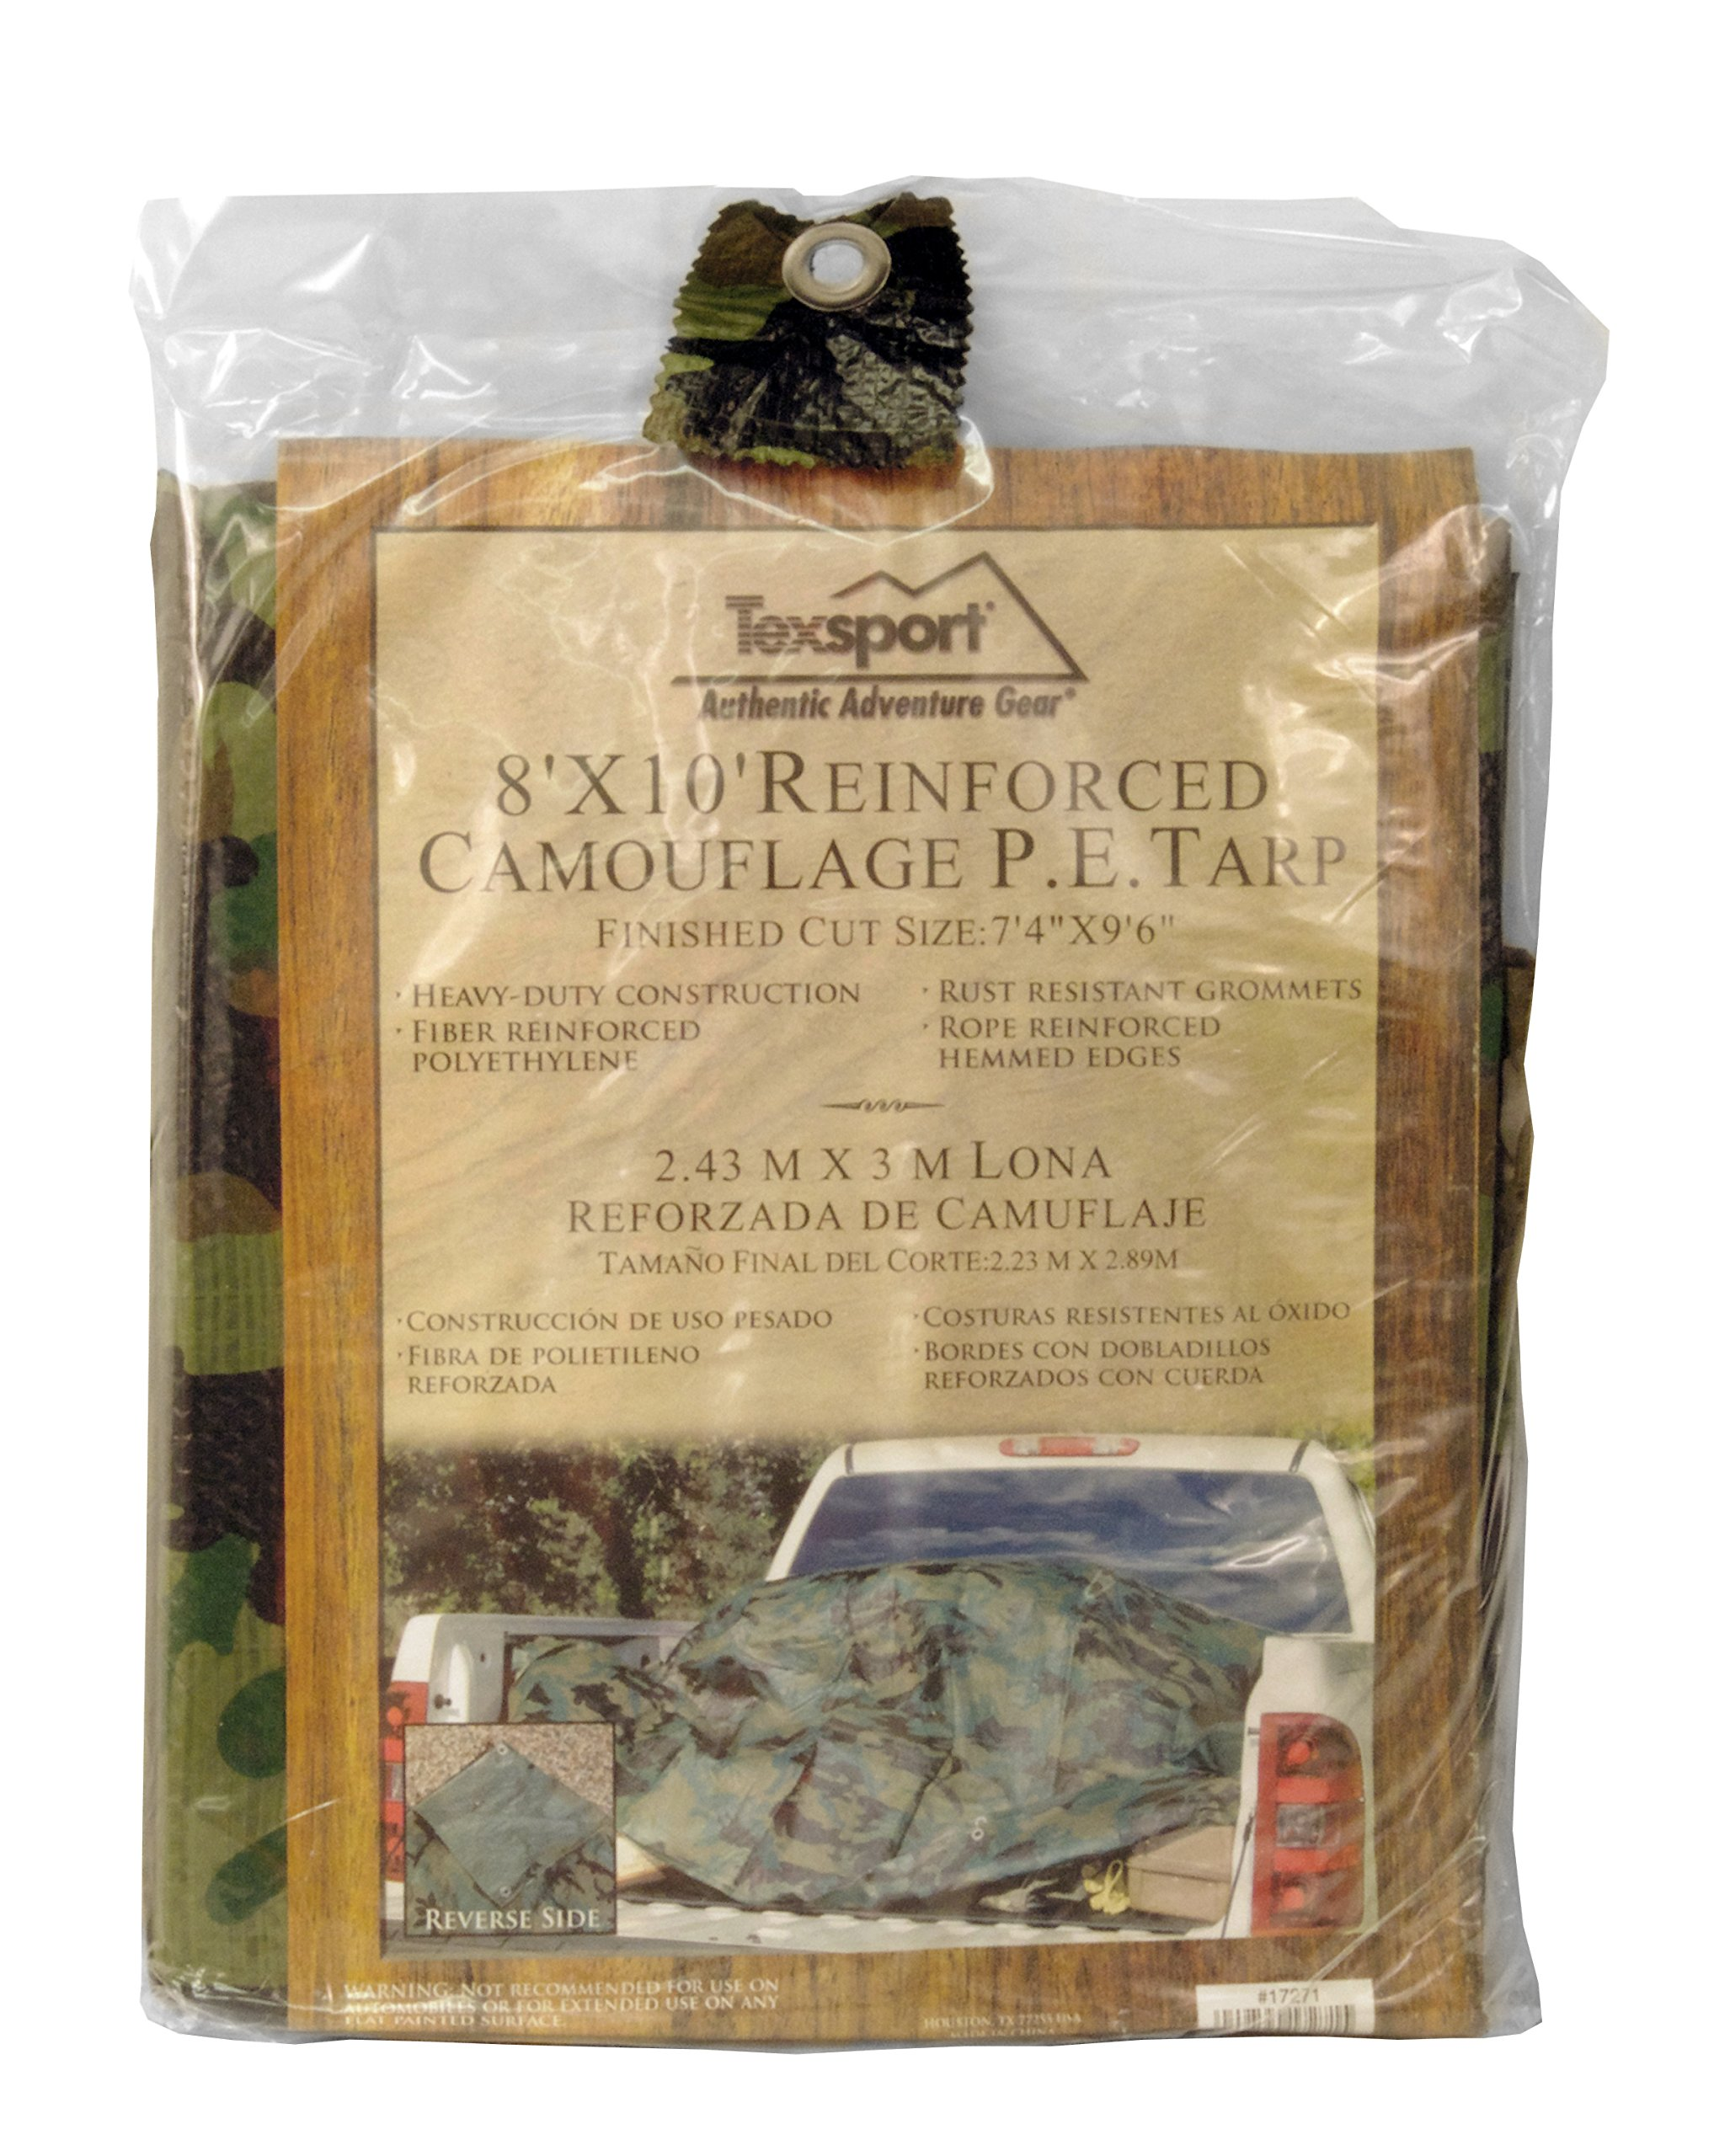 Texsport Heavy-Duty Reinforced Multi-Purpose Waterproof Reversible Camo Olive Drab Tarp by Texsport